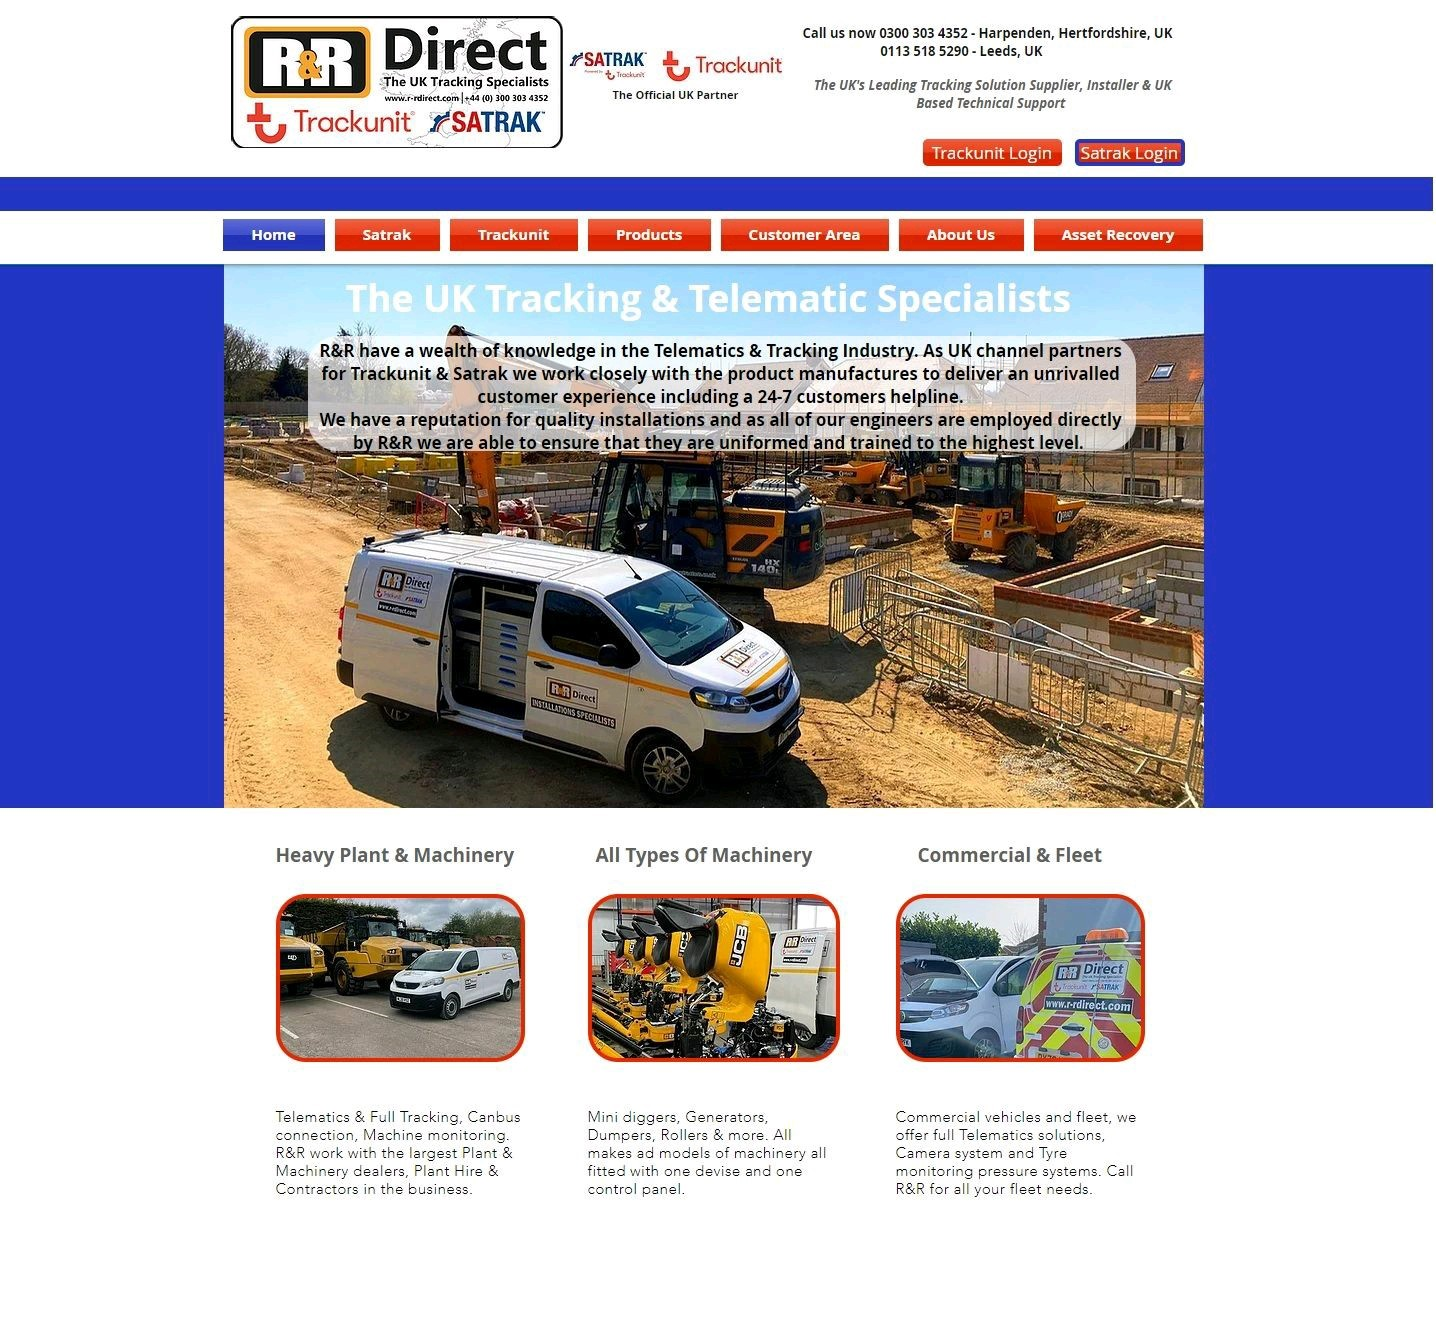 R&R Direct working in partnership with the biggest names in the Telematics & Digital information industry.